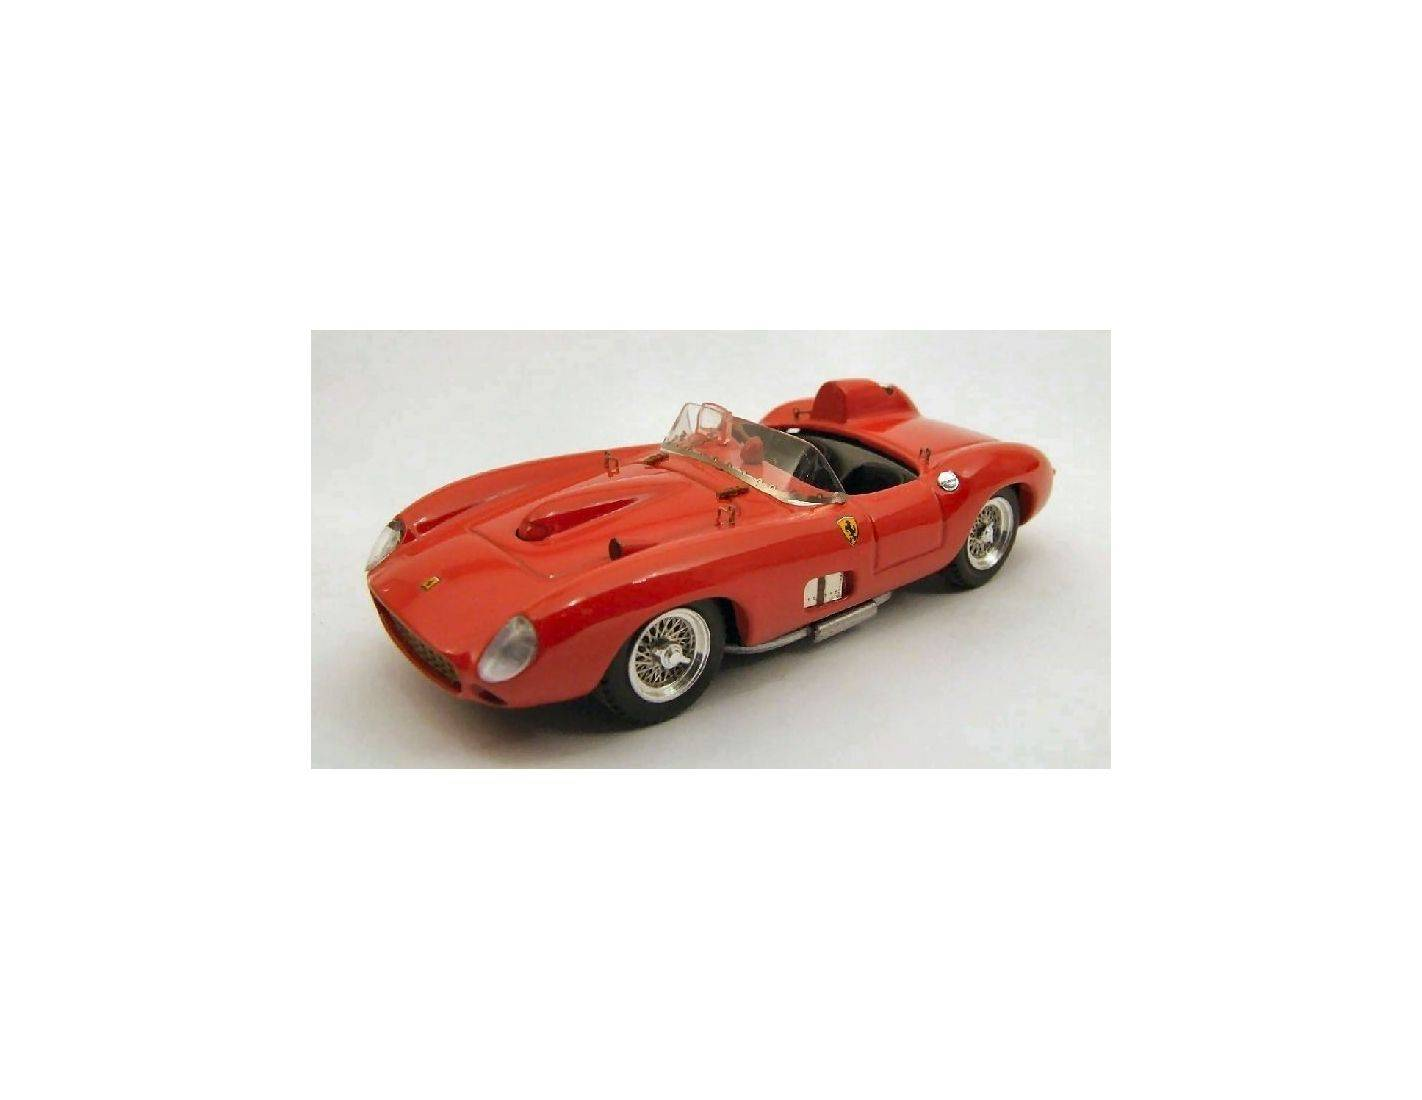 Art Model AM0133 FERRARI 315 S/335 S PROVA 1957 RED 1:43 Modellino